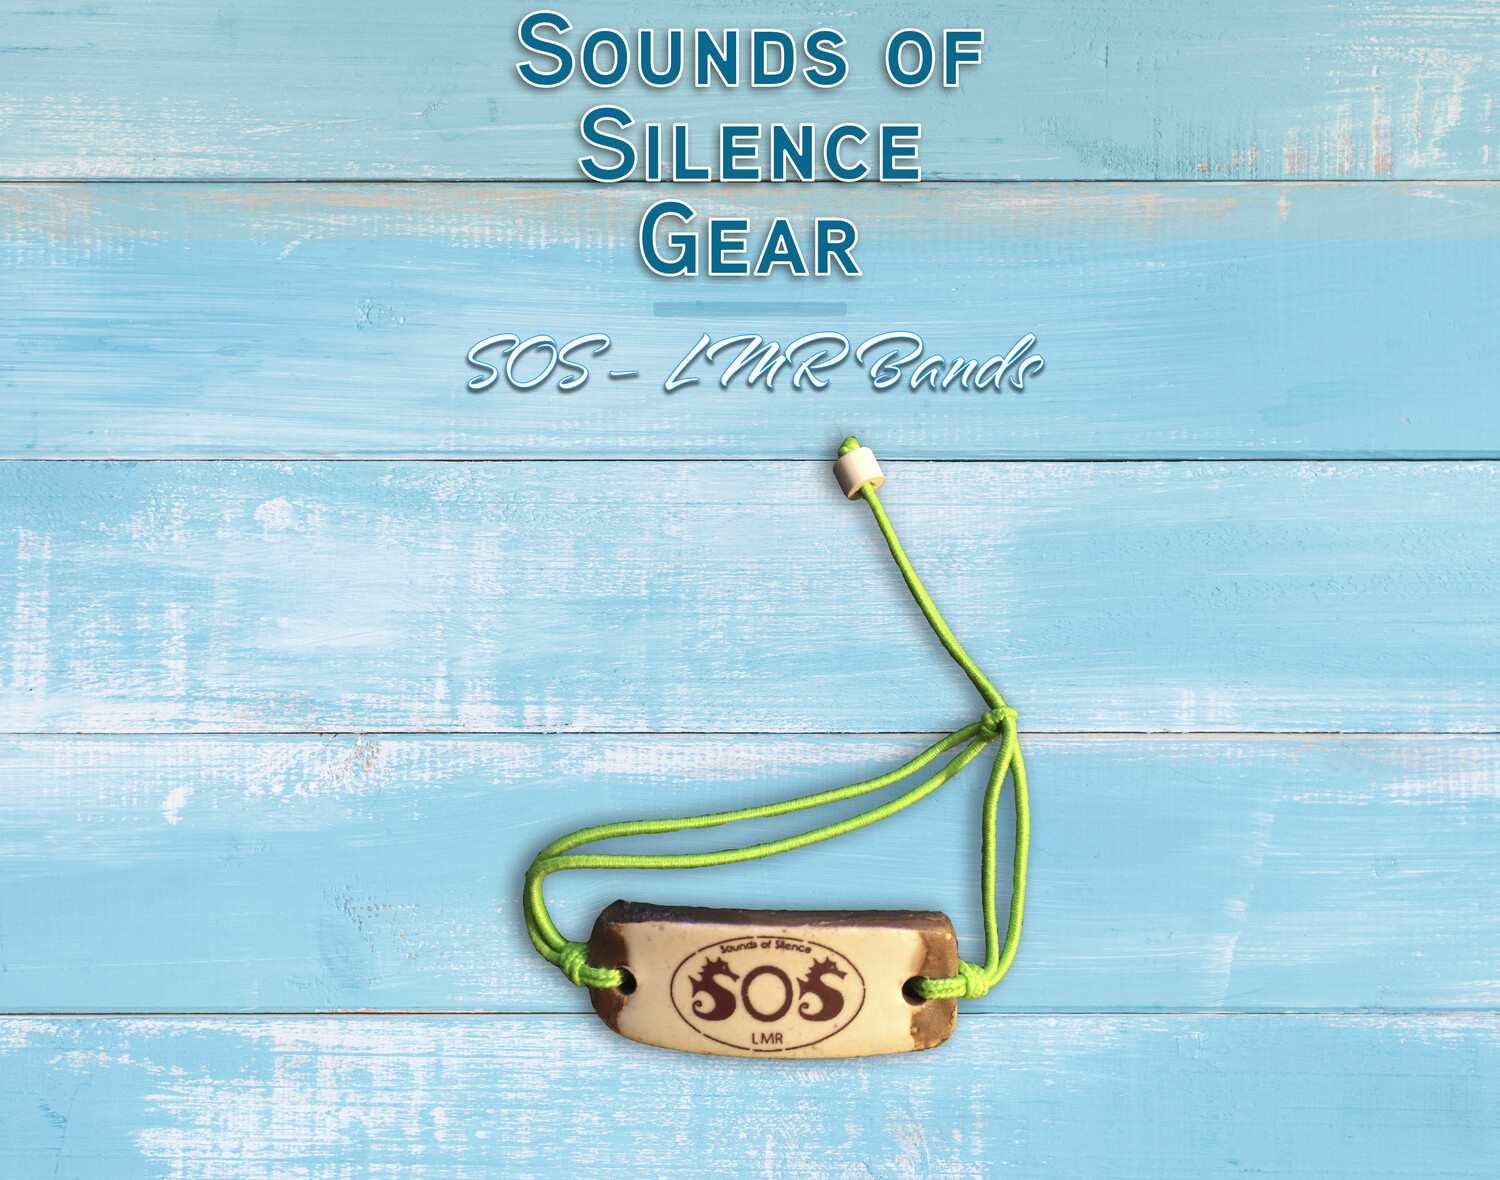 Sounds of Silence SOS - LMR